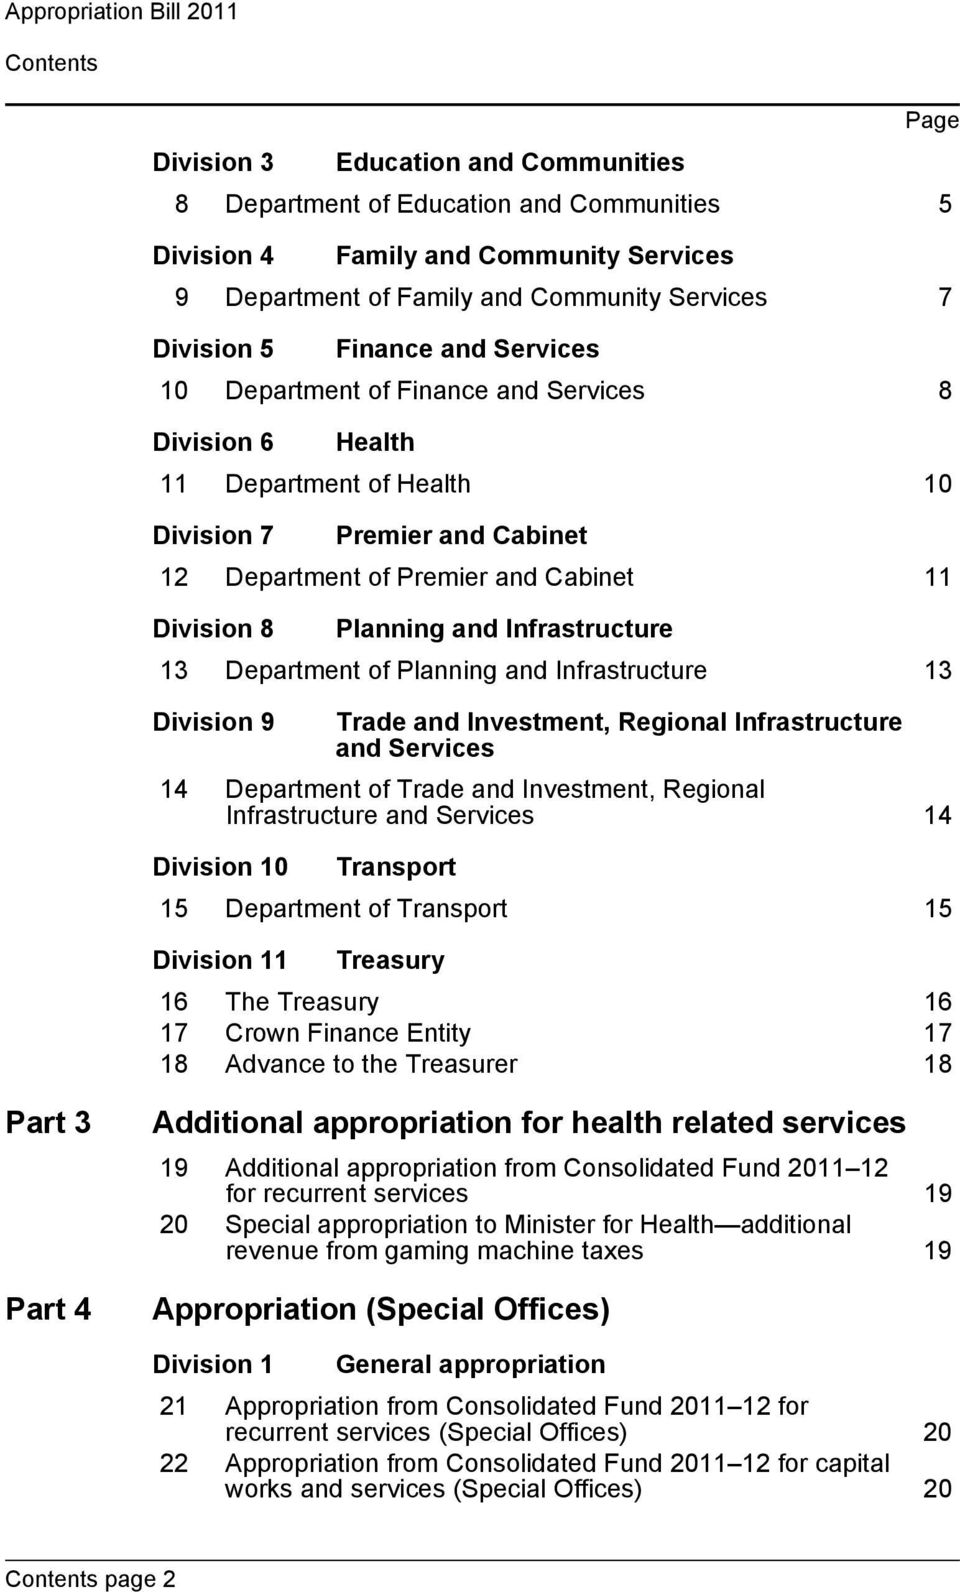 Division 8 Planning and Infrastructure 13 Department of Planning and Infrastructure 13 Division 9 Trade and Investment, Regional Infrastructure and Services 14 Department of Trade and Investment,